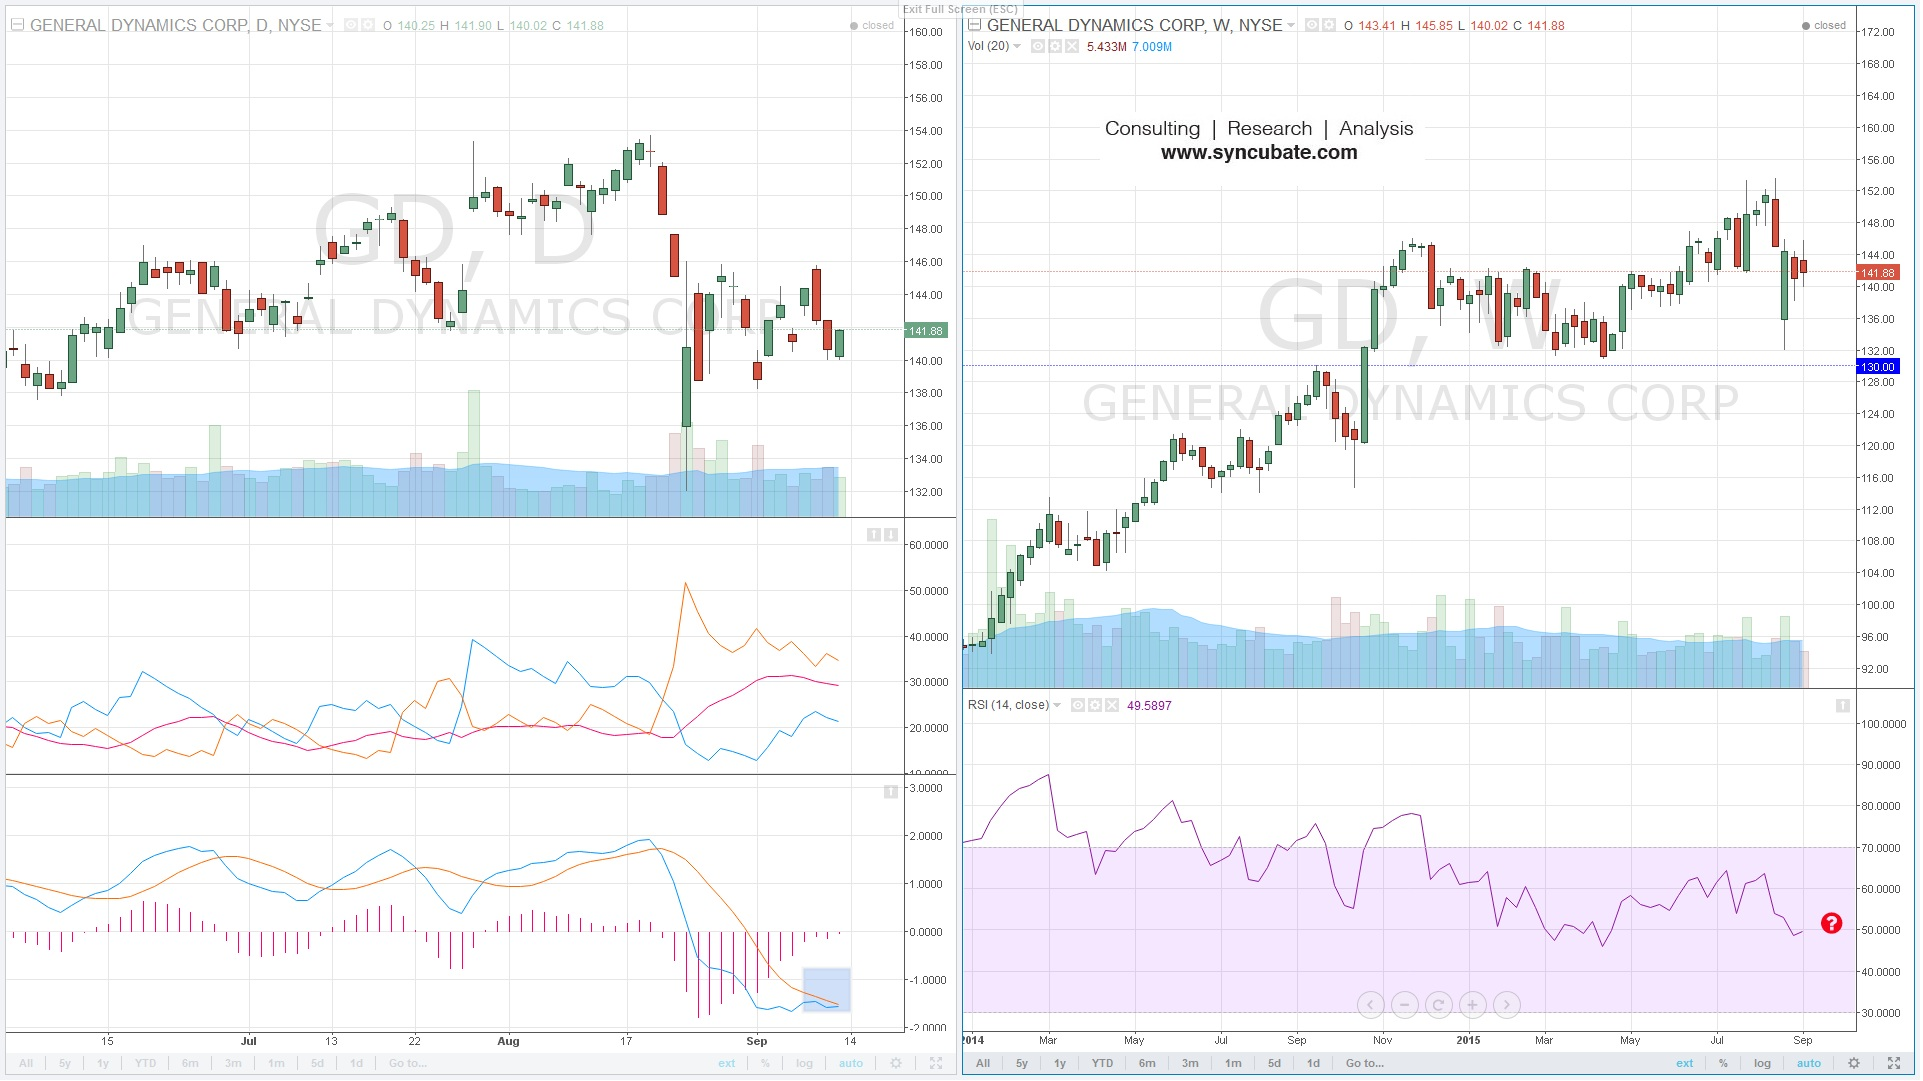 $GD : General Dynamics Corporation